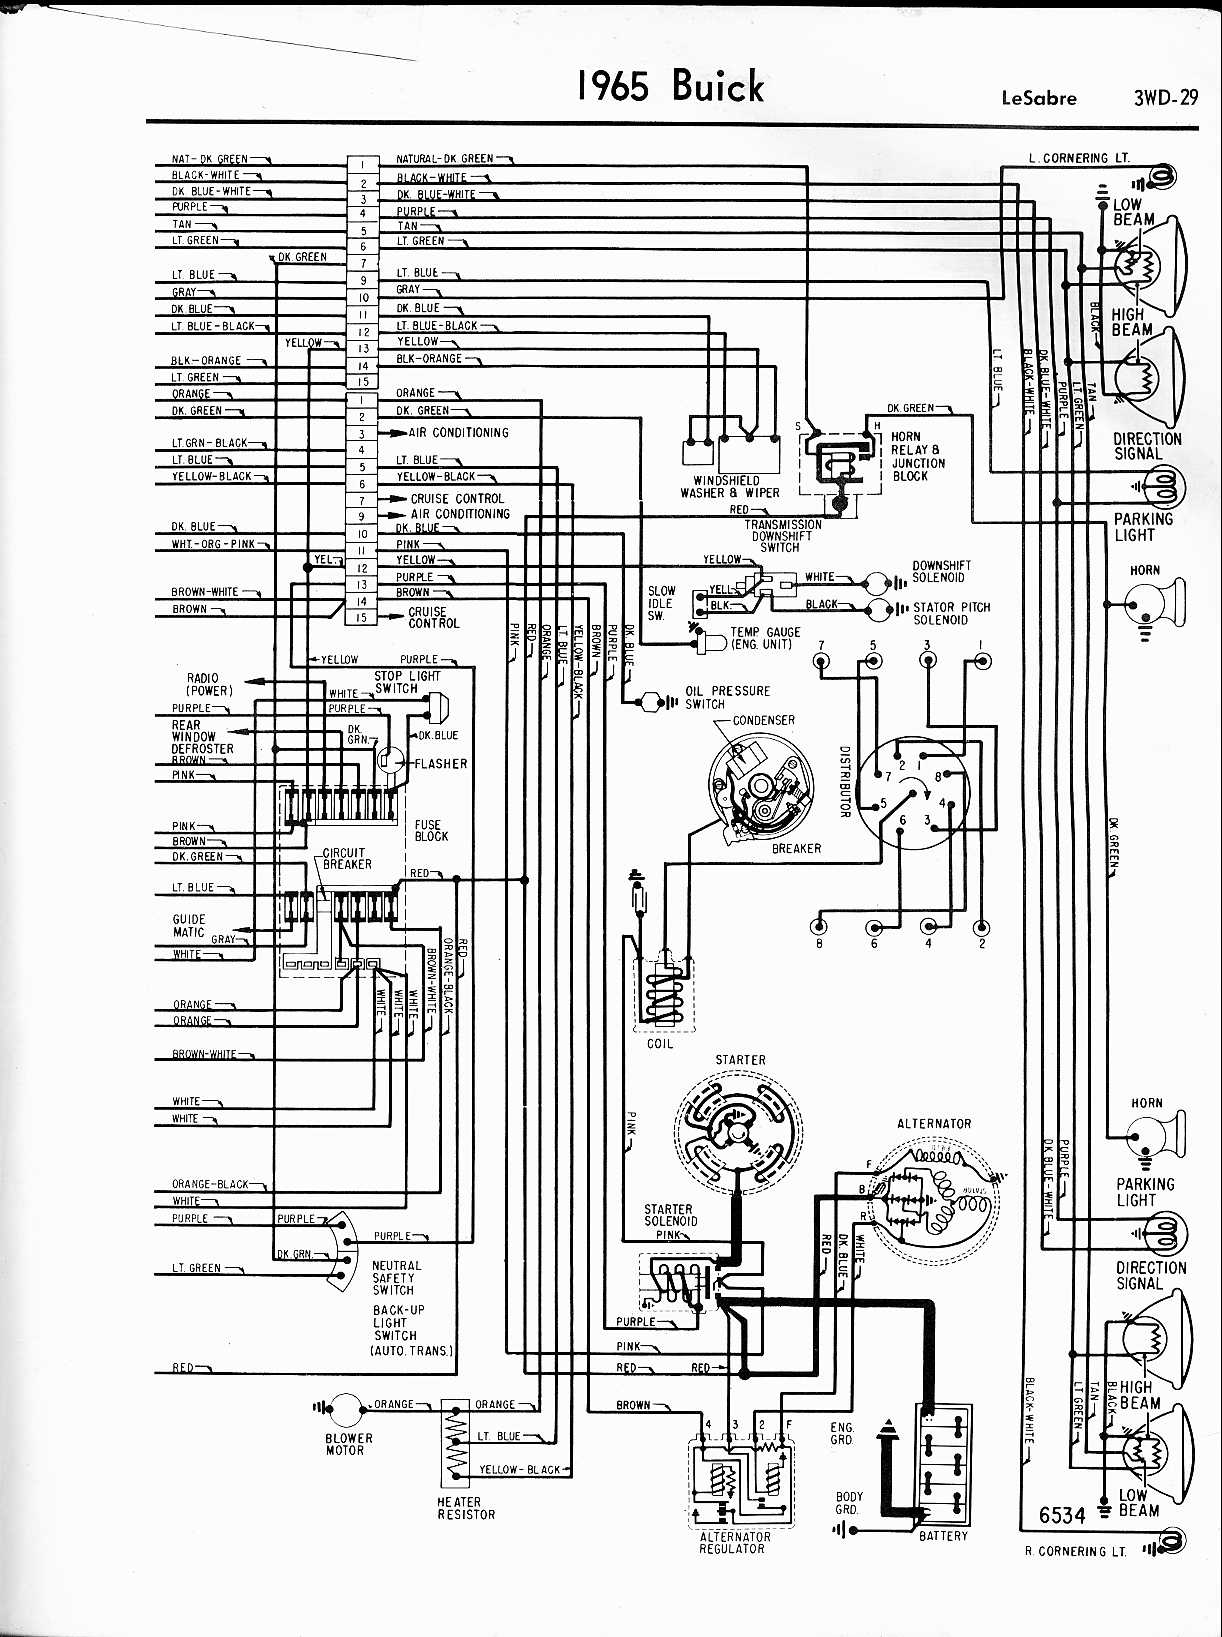 1998 Buick Lesabre Wiring Diagram Free Download Just Another Century Fuse 1968 Wildcat Library Rh 56 Akszer Eu Ignition